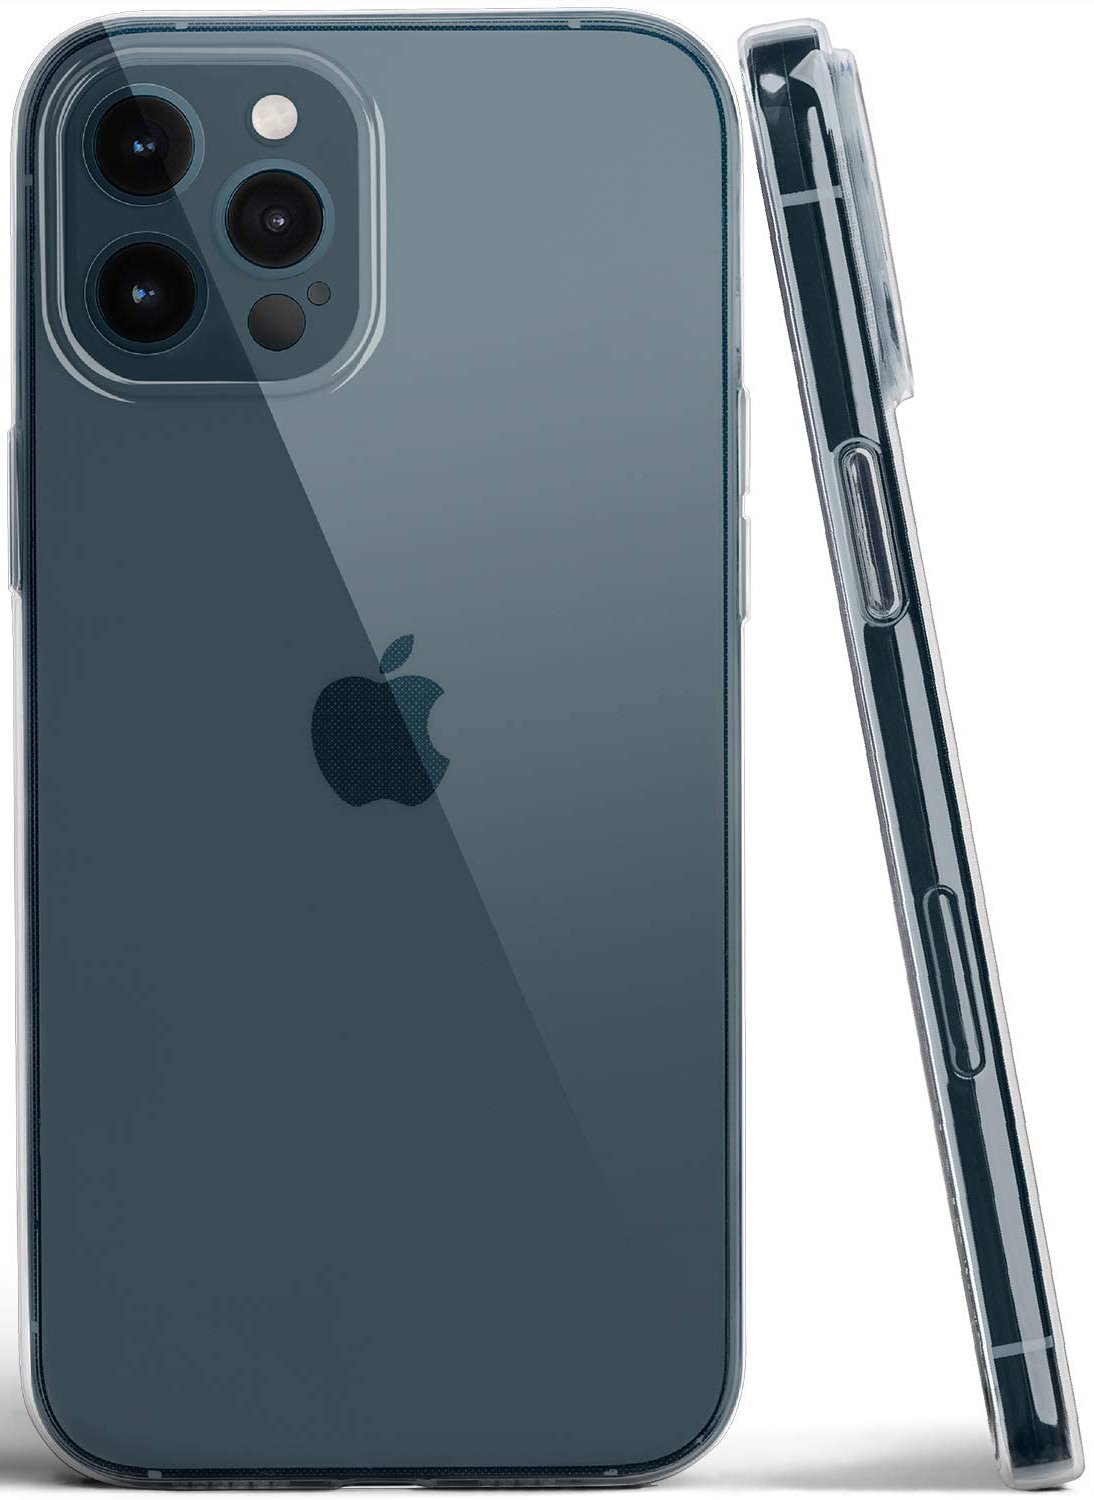 Totallee Clear Iphone 12 Pro Max Case